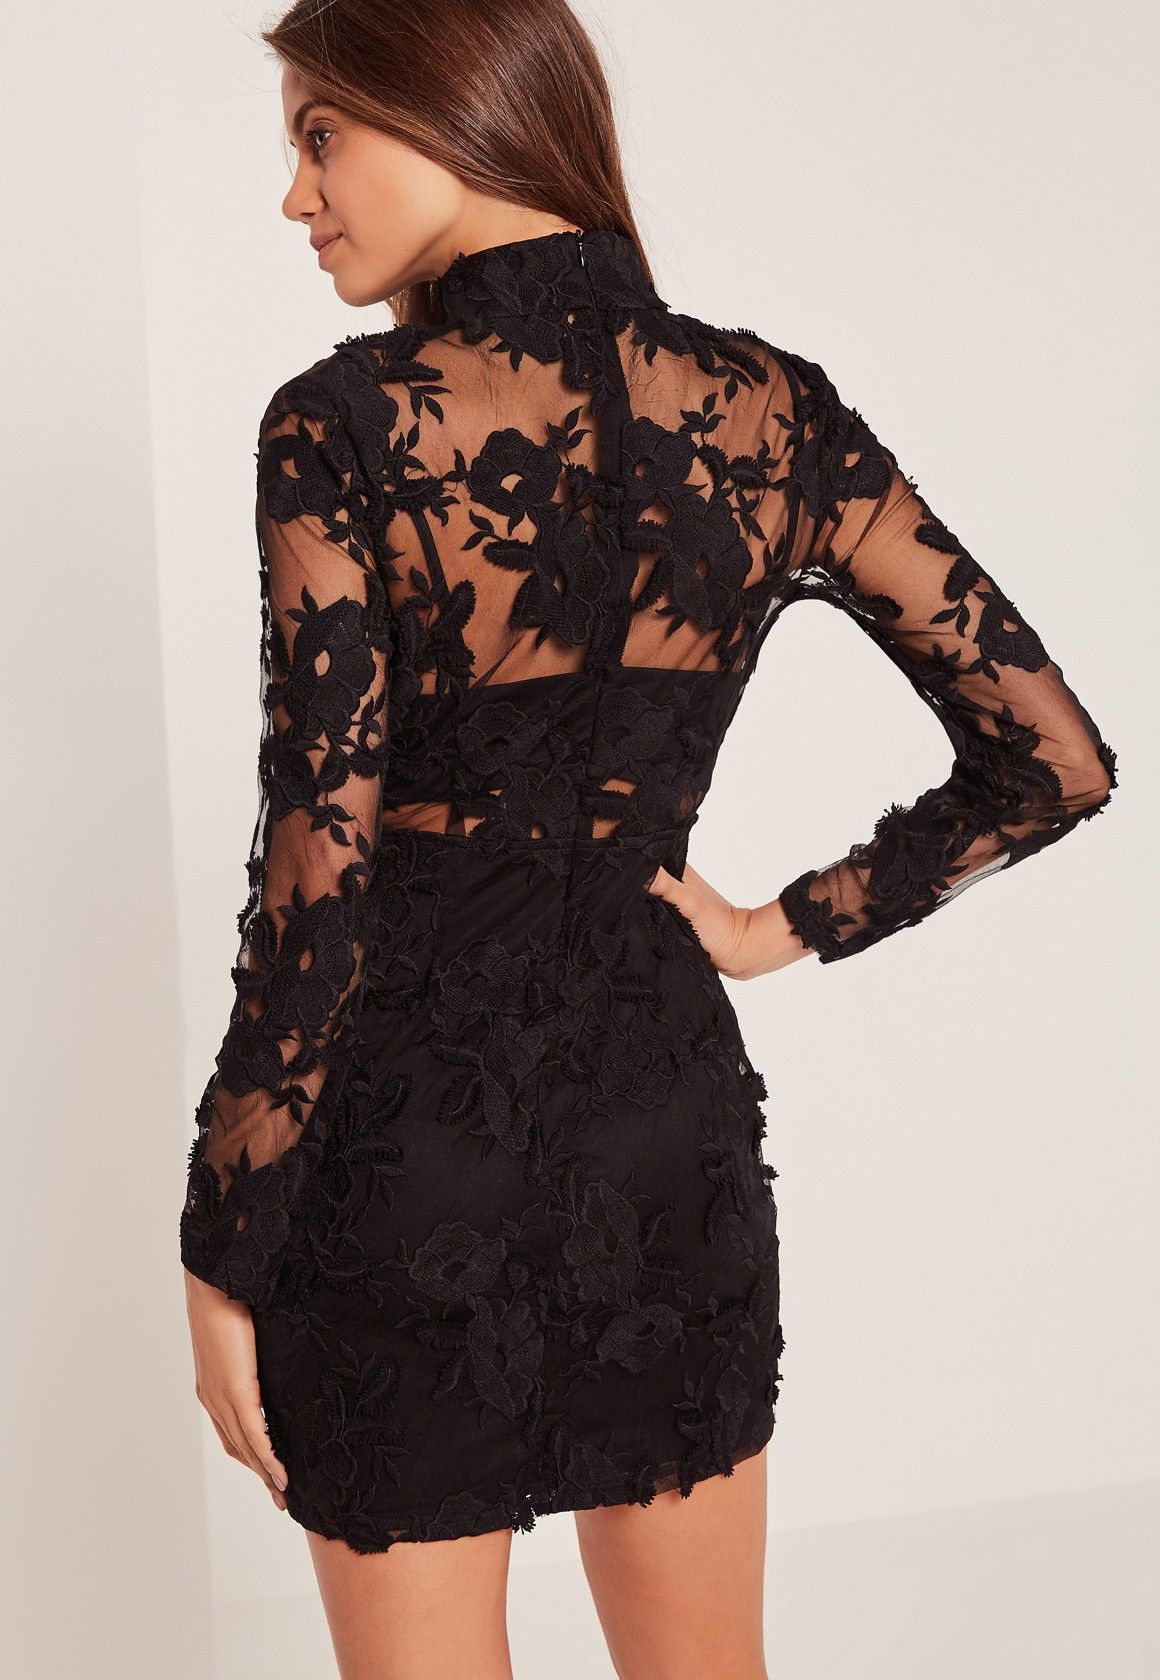 Missguided - High Neck Embroidered Lace Bodycon Dress Black